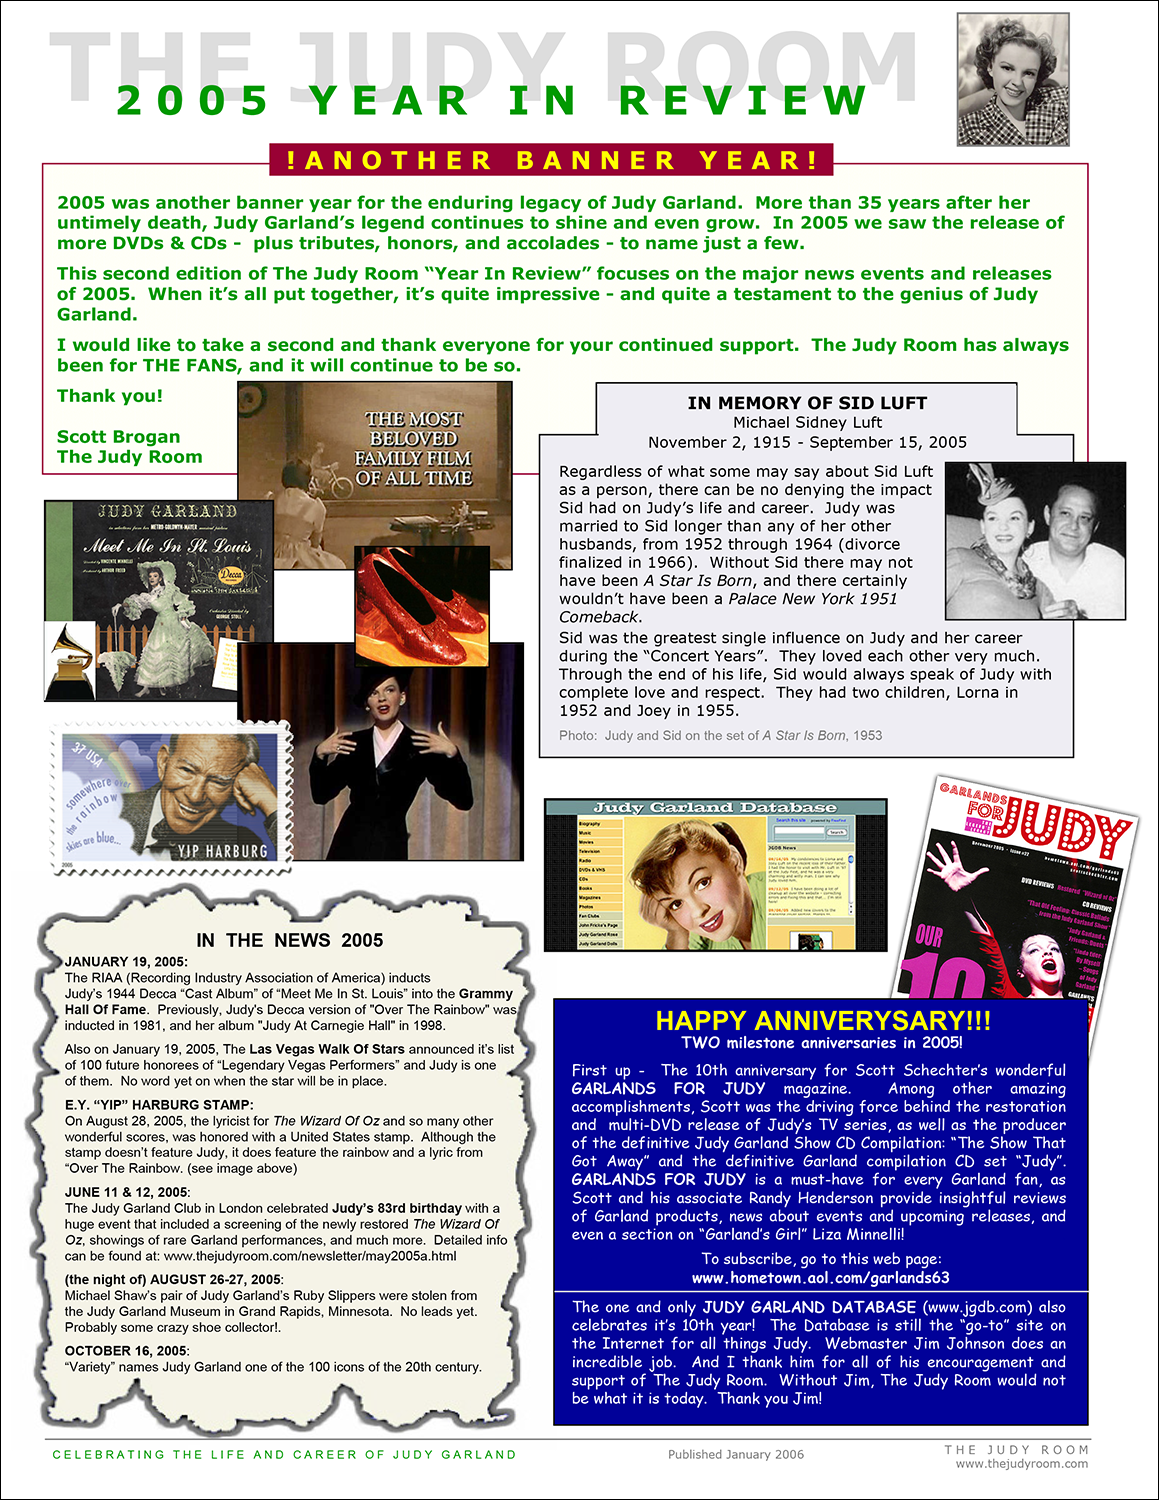 The Judy Room's 2005 Year in Review